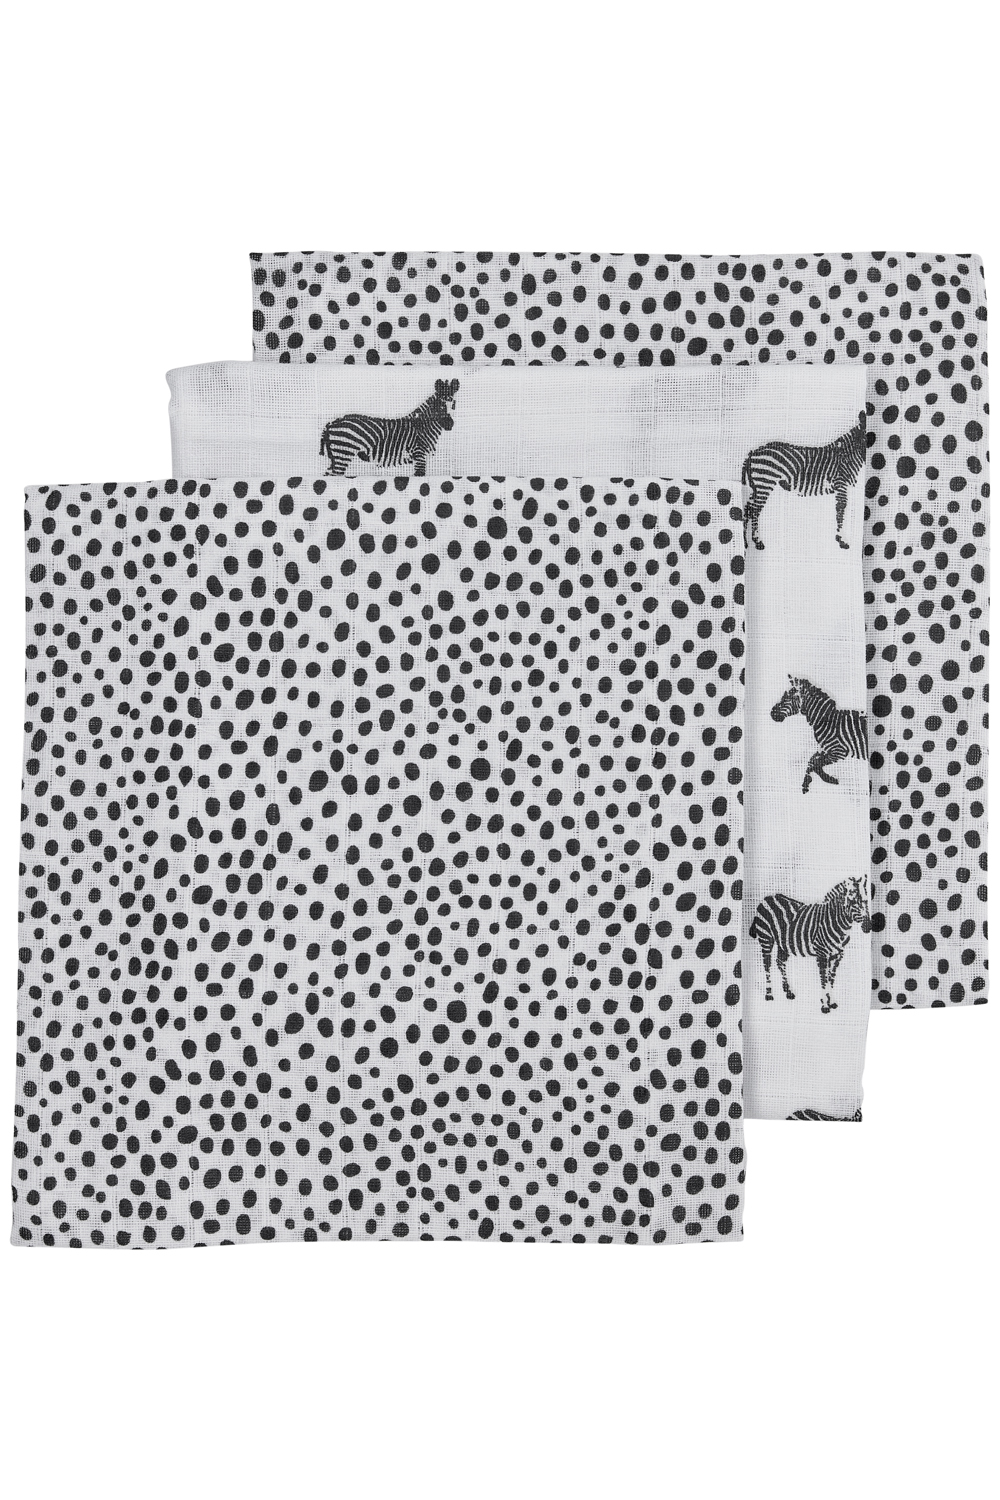 Hydrofiele Luiers 3-Pack  Zebra Animal/Cheetah - Black - 70x70cm